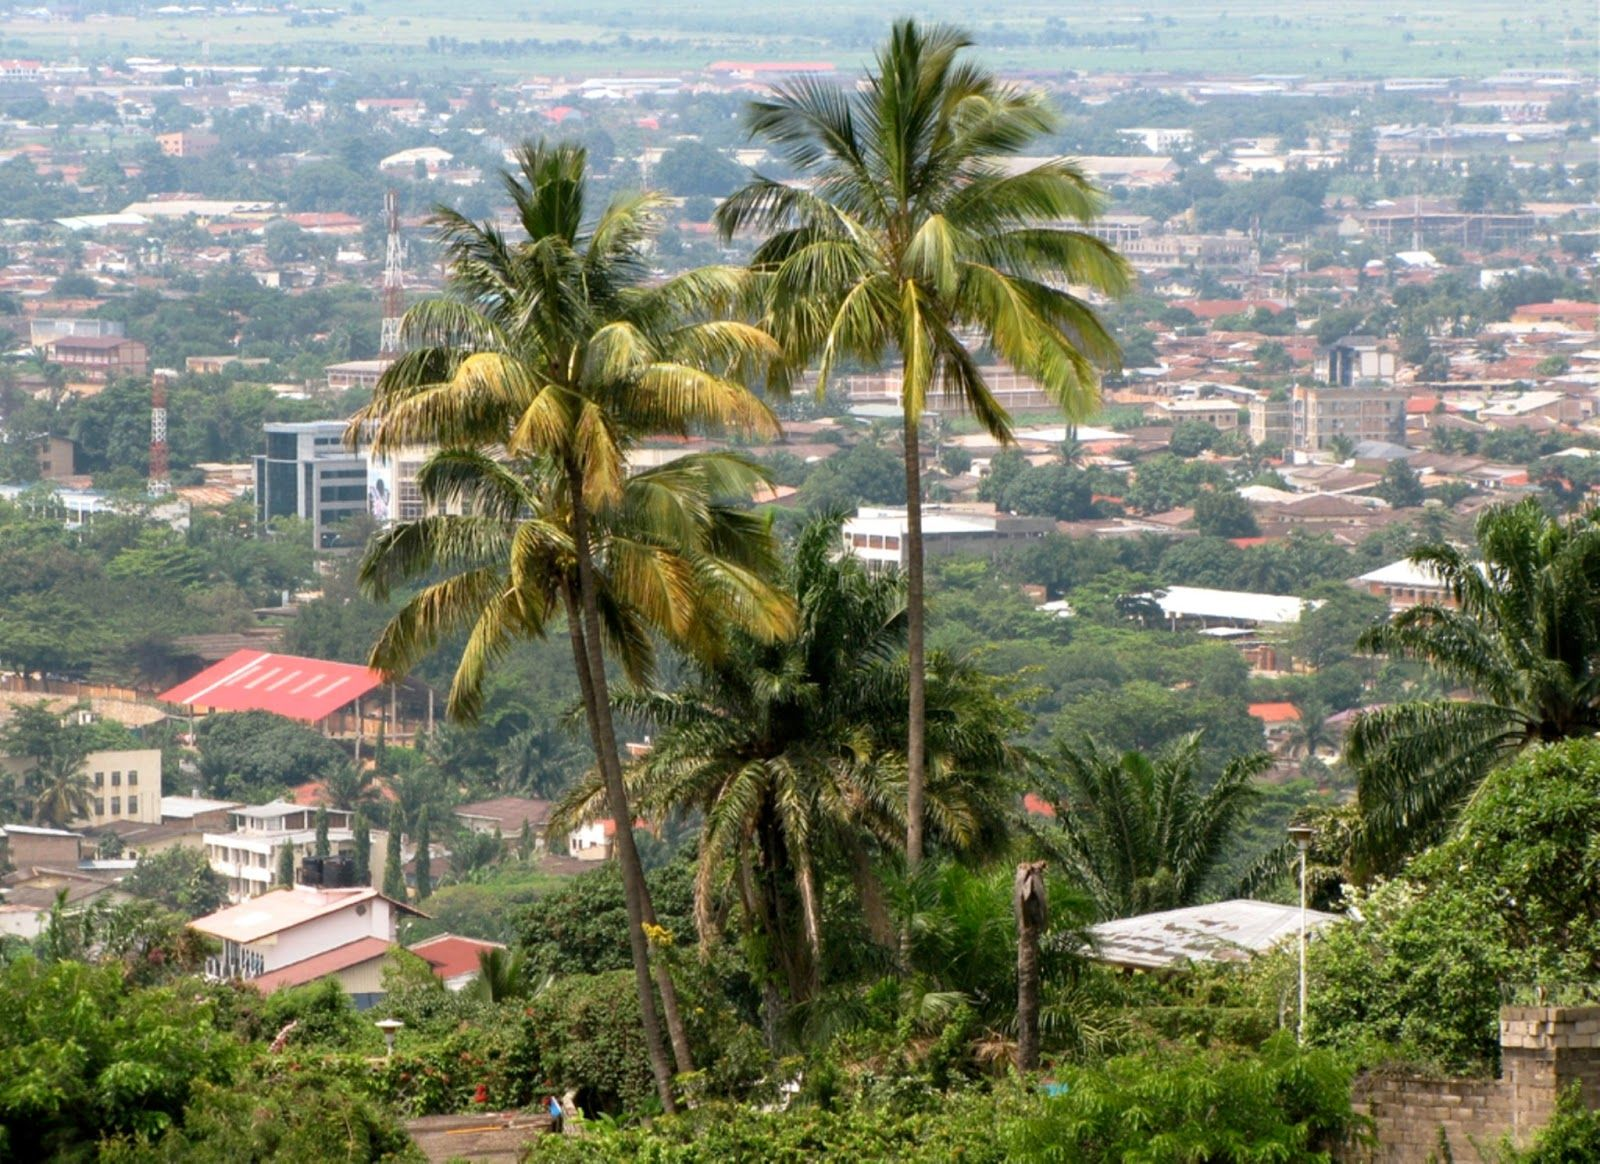 Unlike Other Capitals In The Great Lakes Region Of Africa Bujumbura Has Seen Very Little Development Since The 1980s Descrip Earth Photography Burundi Africa